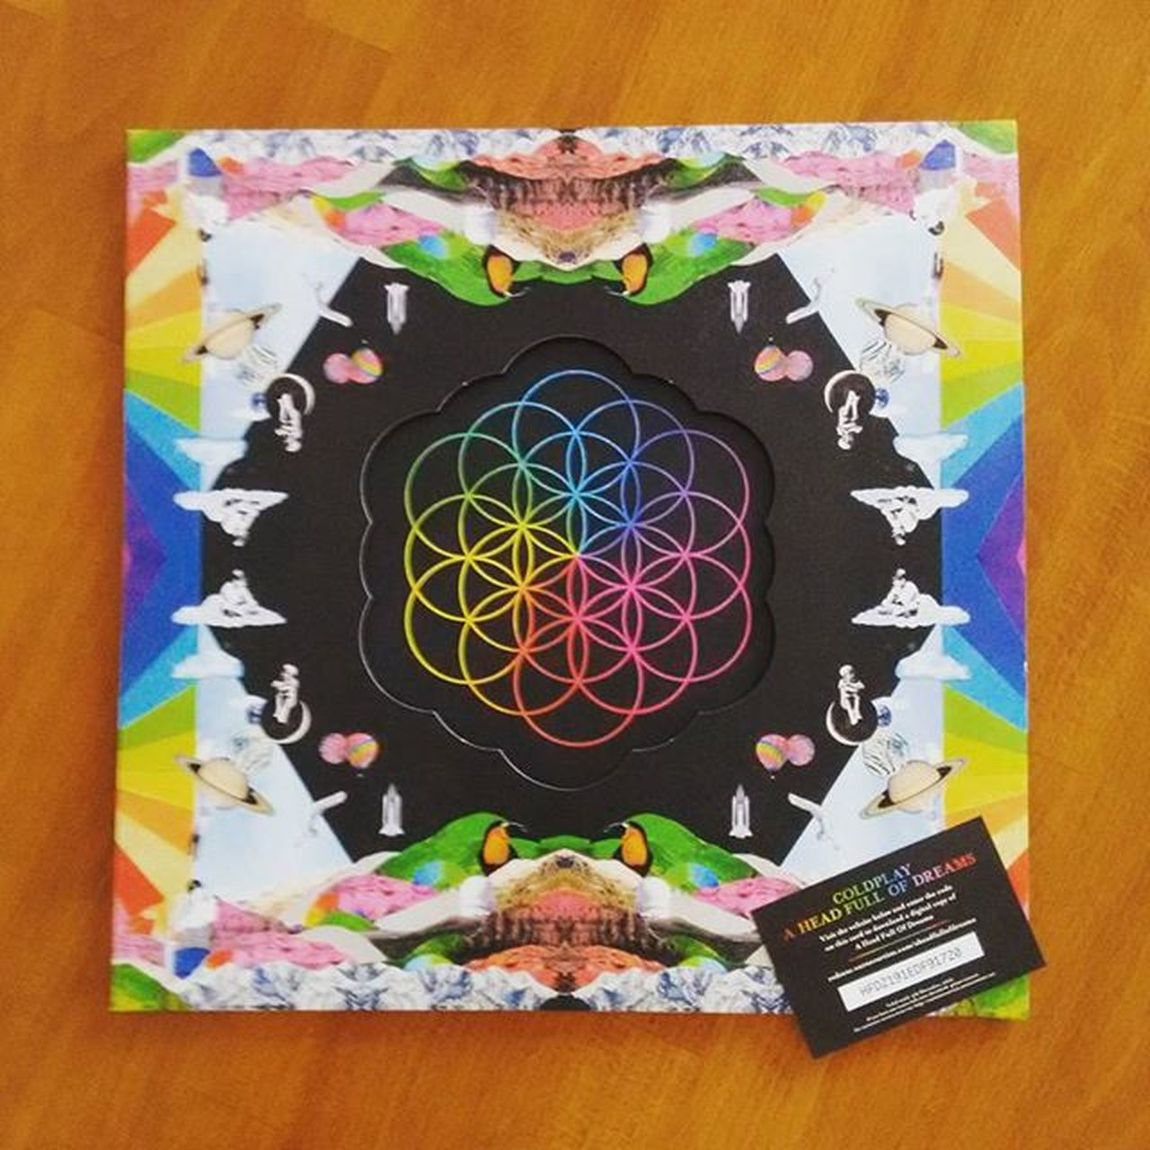 A Head Full Of Dreams double coloured vinyl? Don't mind if I do! Coldplay Record Aheadfullofdreams Chrismartin Jonnybuckland Guyberryman  Willchampion Vinyl Colouredvinyl Limitededition Fan Music Pop Rock